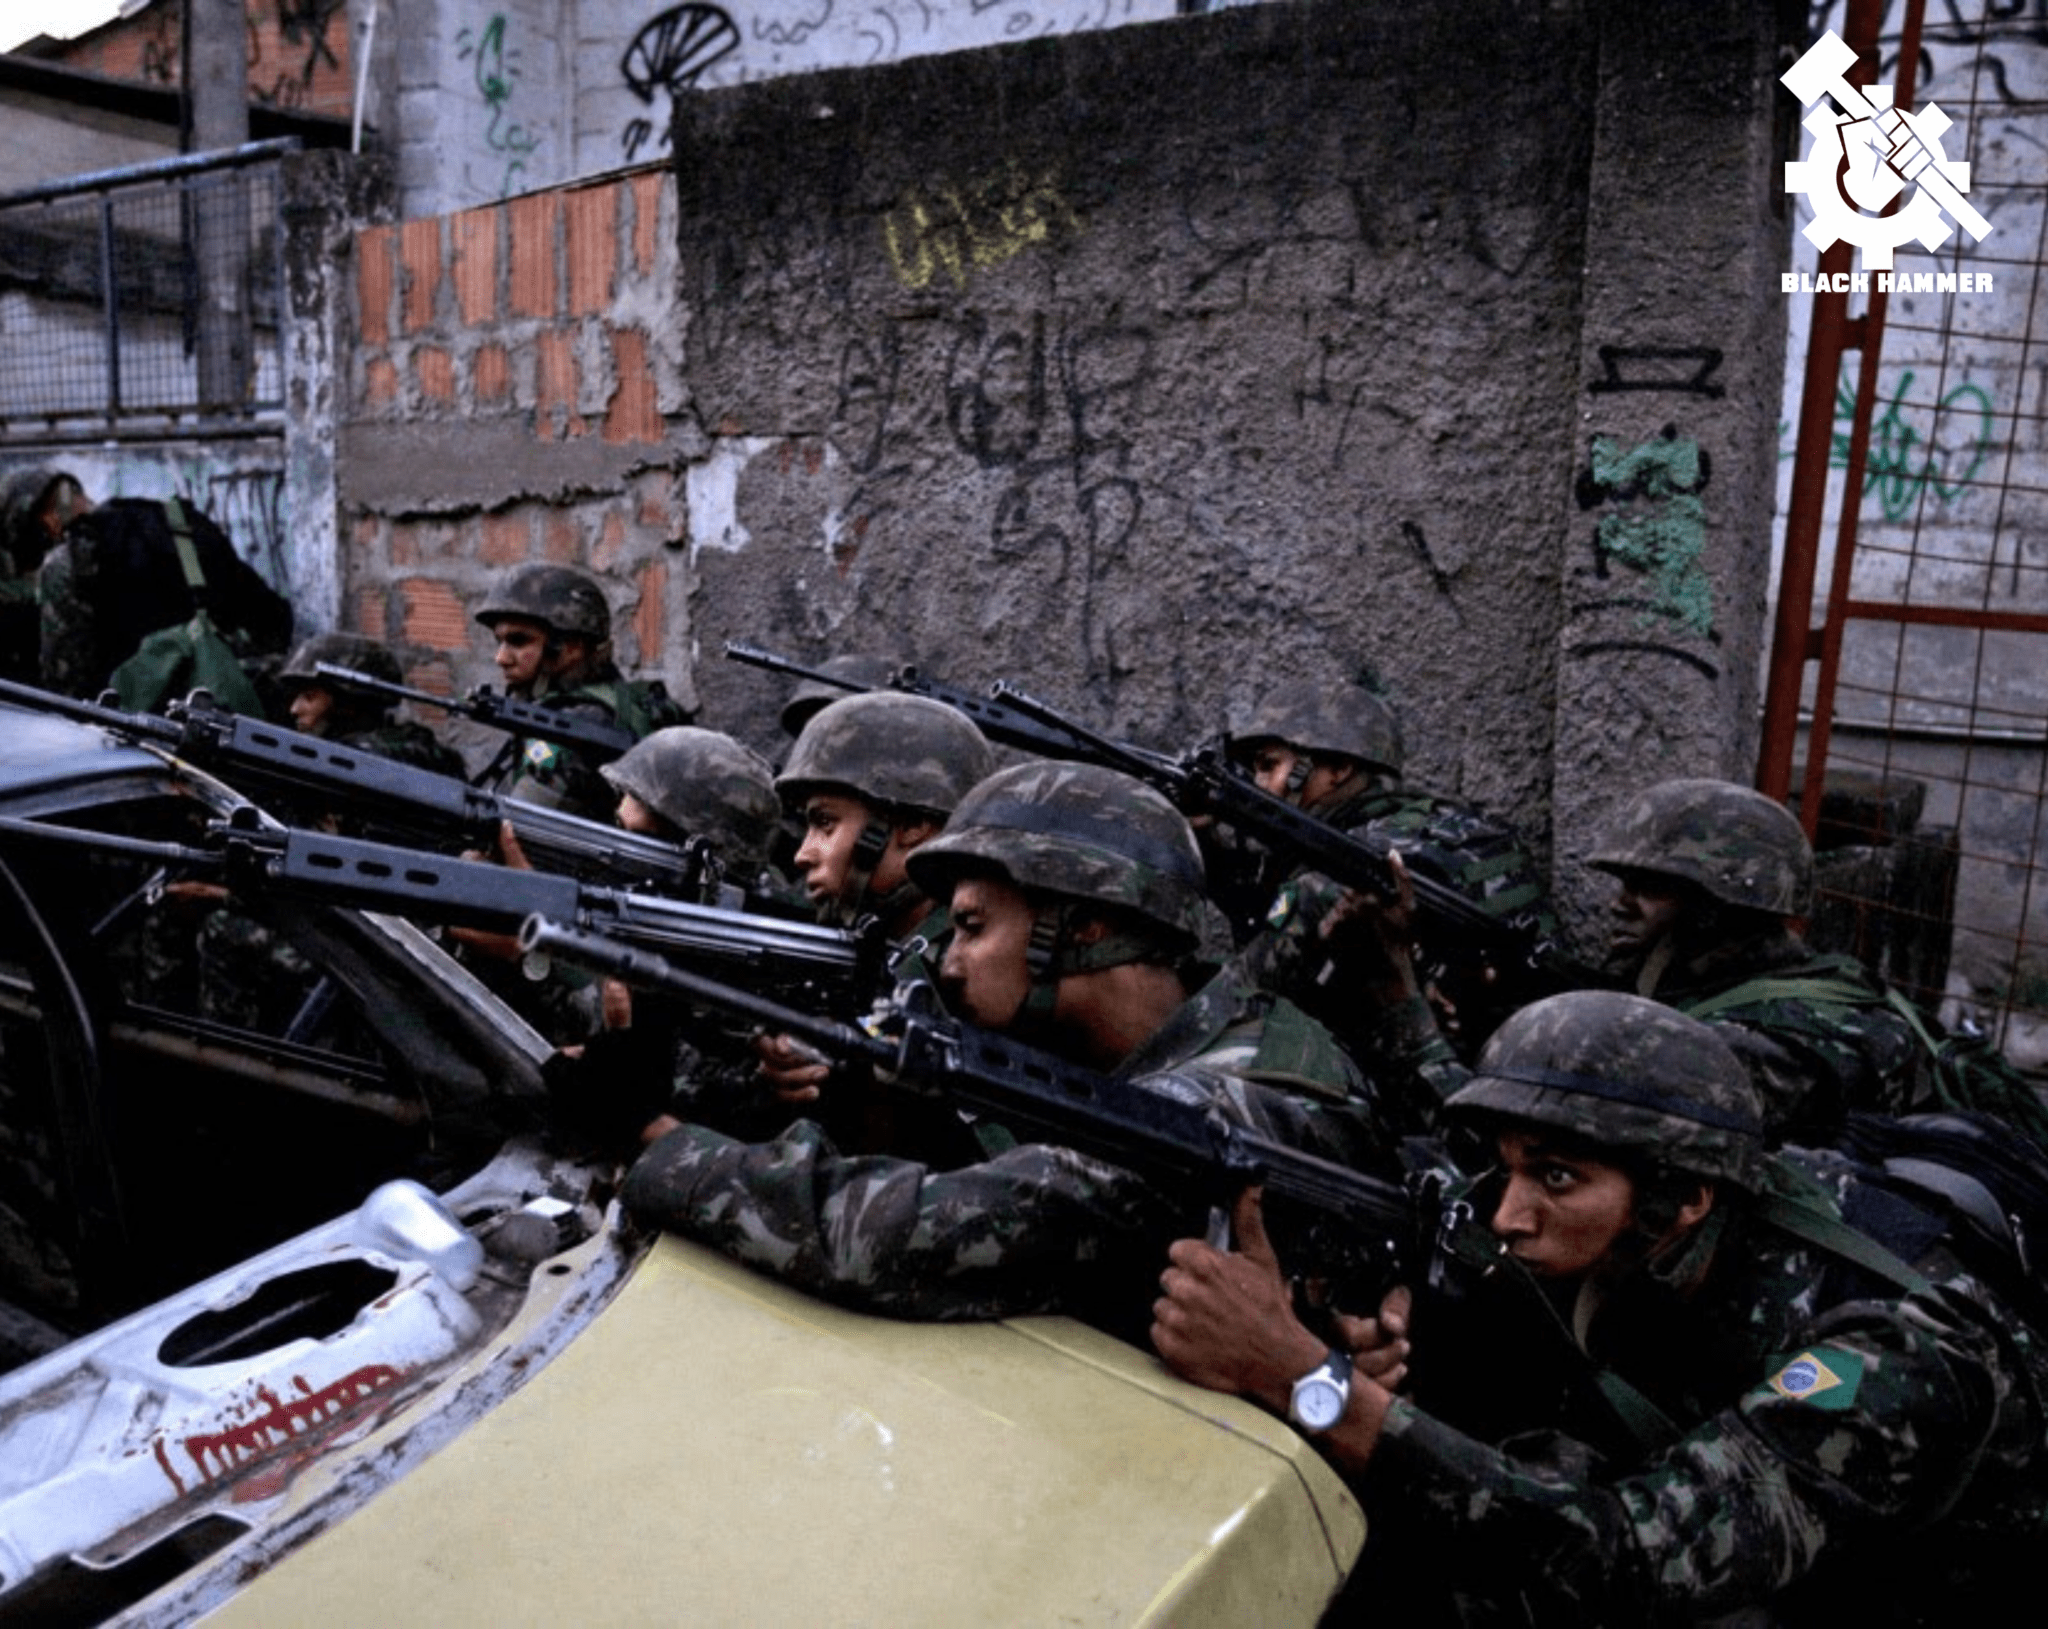 Pigs In Brazil Massacre Over 25 People To Benefit White Power